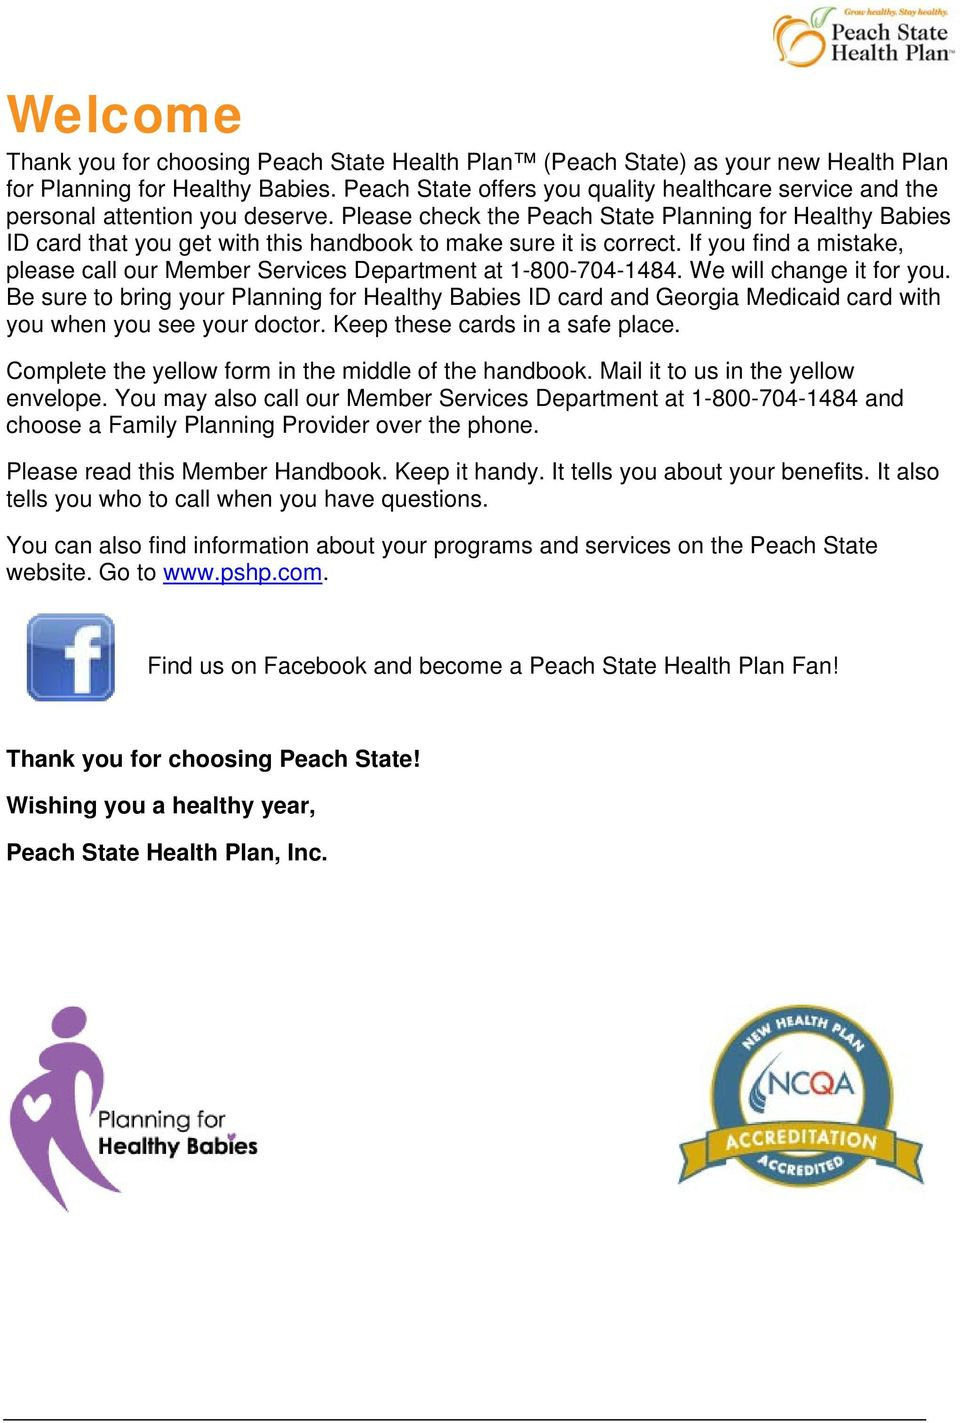 Please check the Peach State Planning for Healthy Babies ID card that you get with this handbook to make sure it is correct.